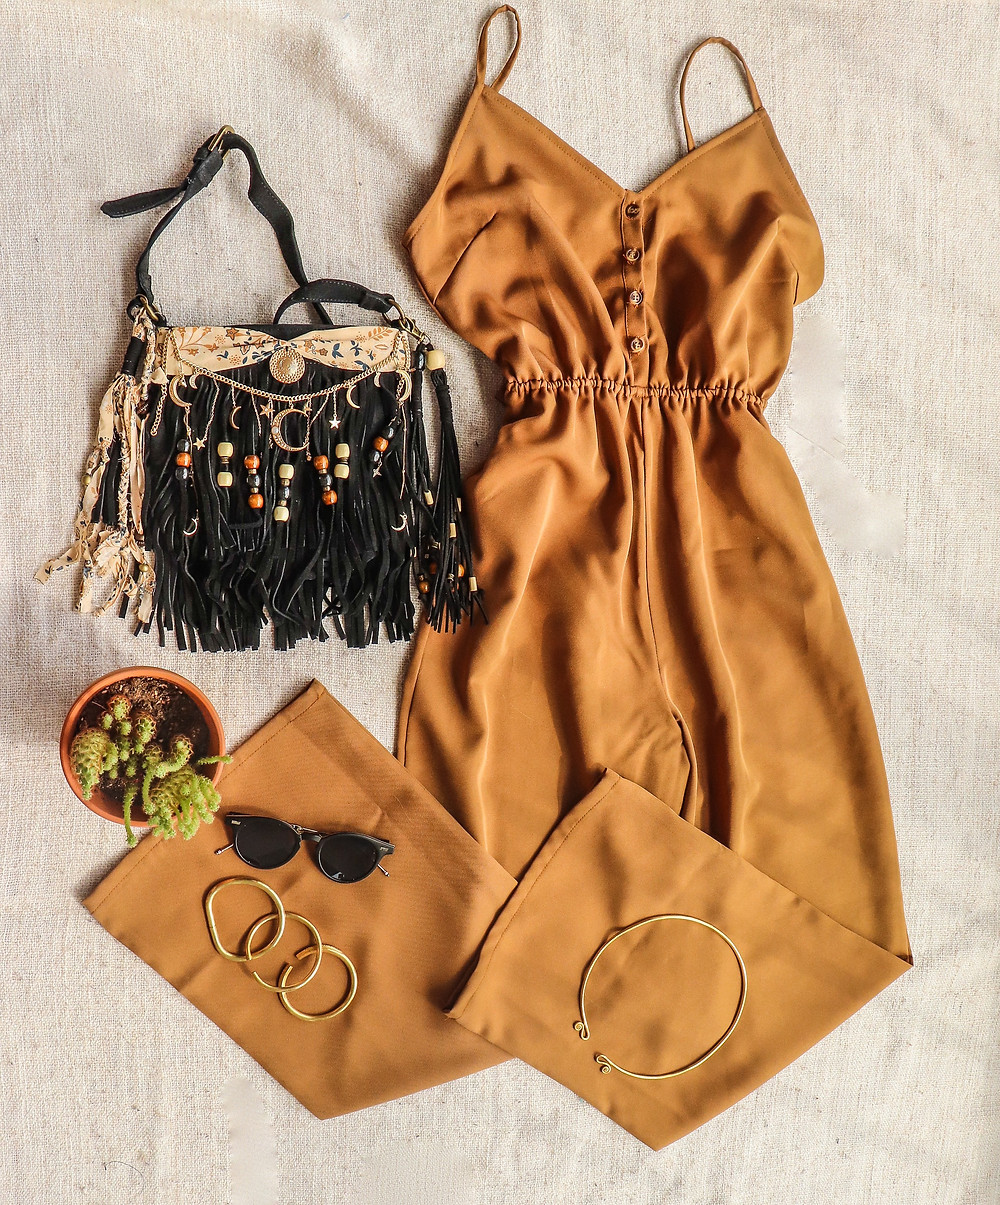 festival outfit inspiration